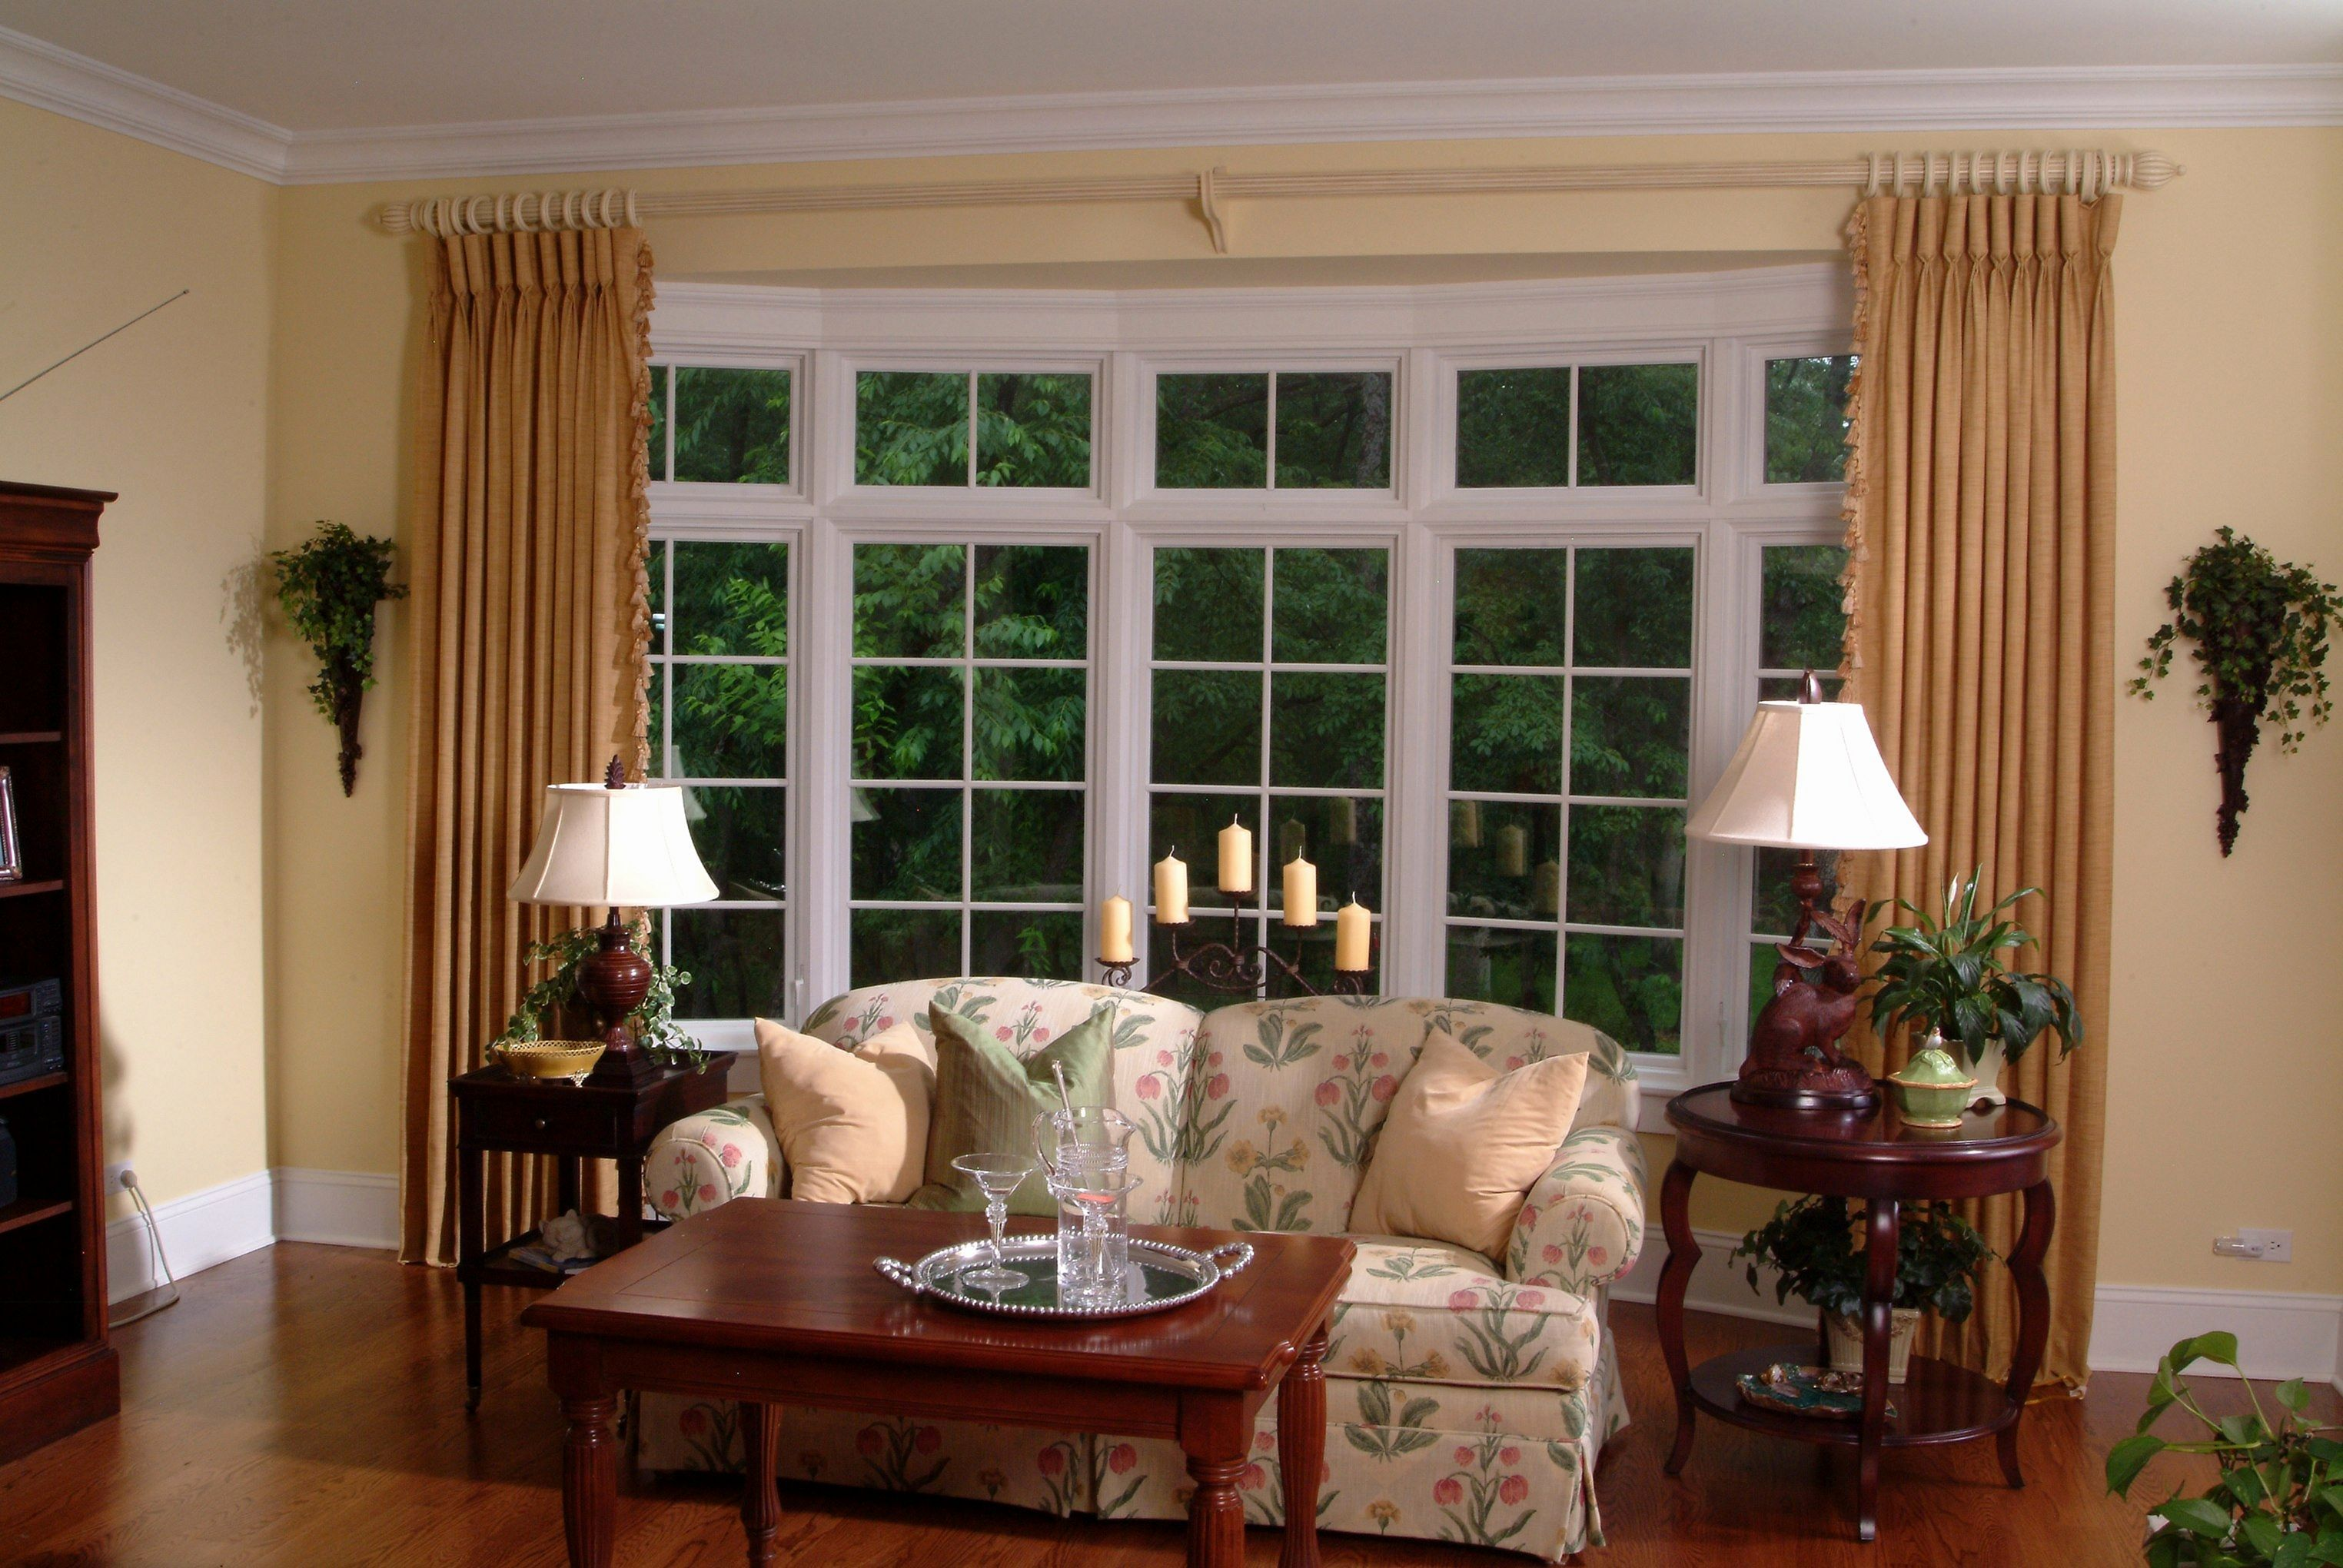 16 Incredible Windows Decoration Ideas For Best Home Inspiration Freshouz Com Dining Room Windows Window Treatments Living Room Living Room Windows